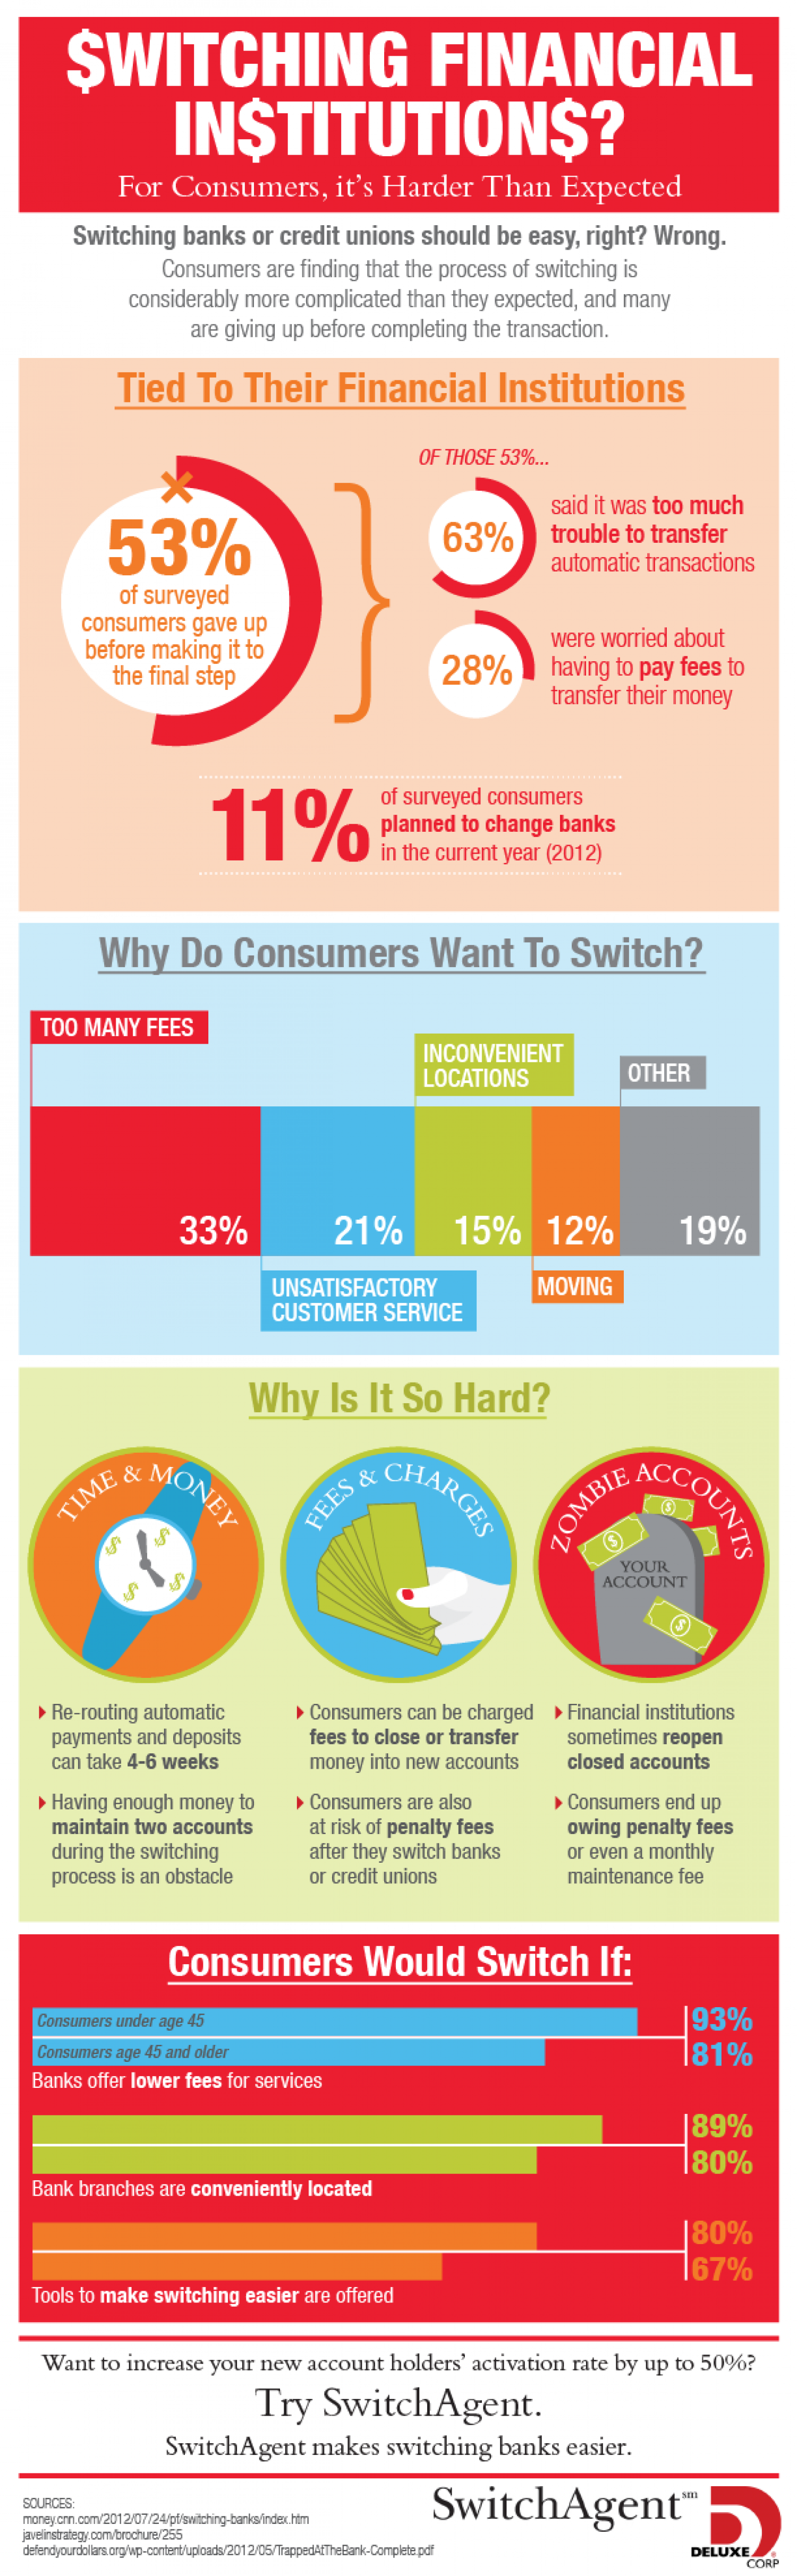 Switching Financial Institutions Infographic